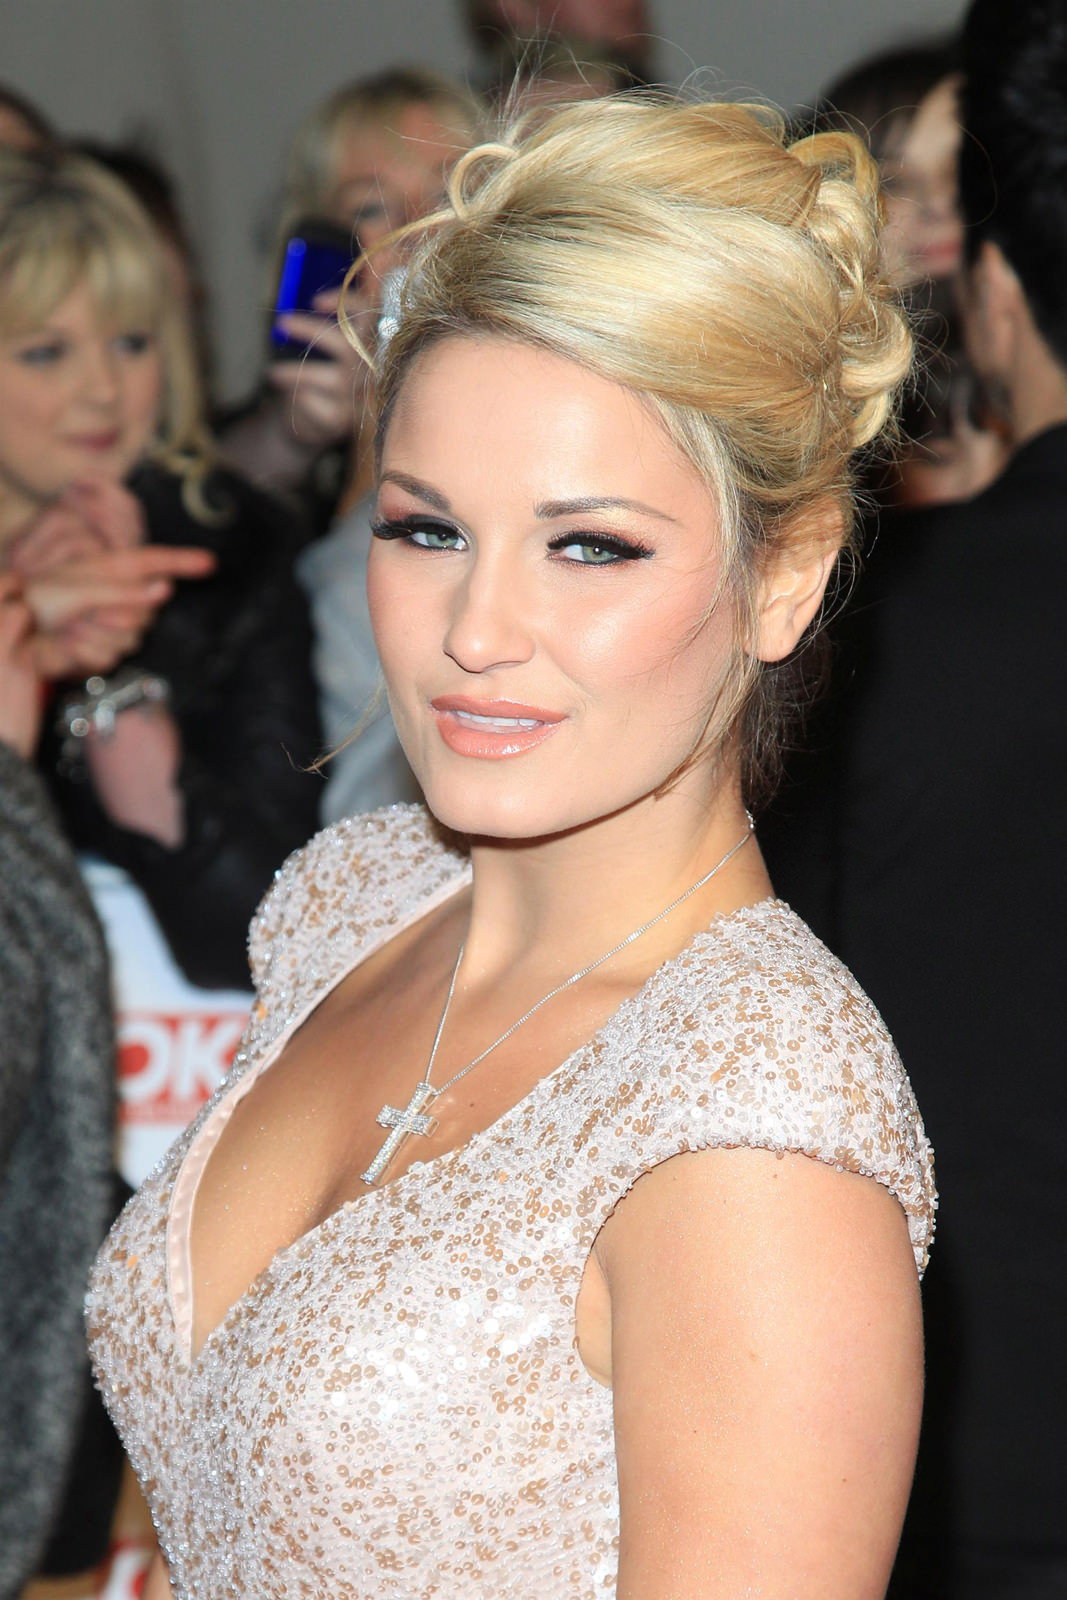 Sam Faiers Photo Gallery